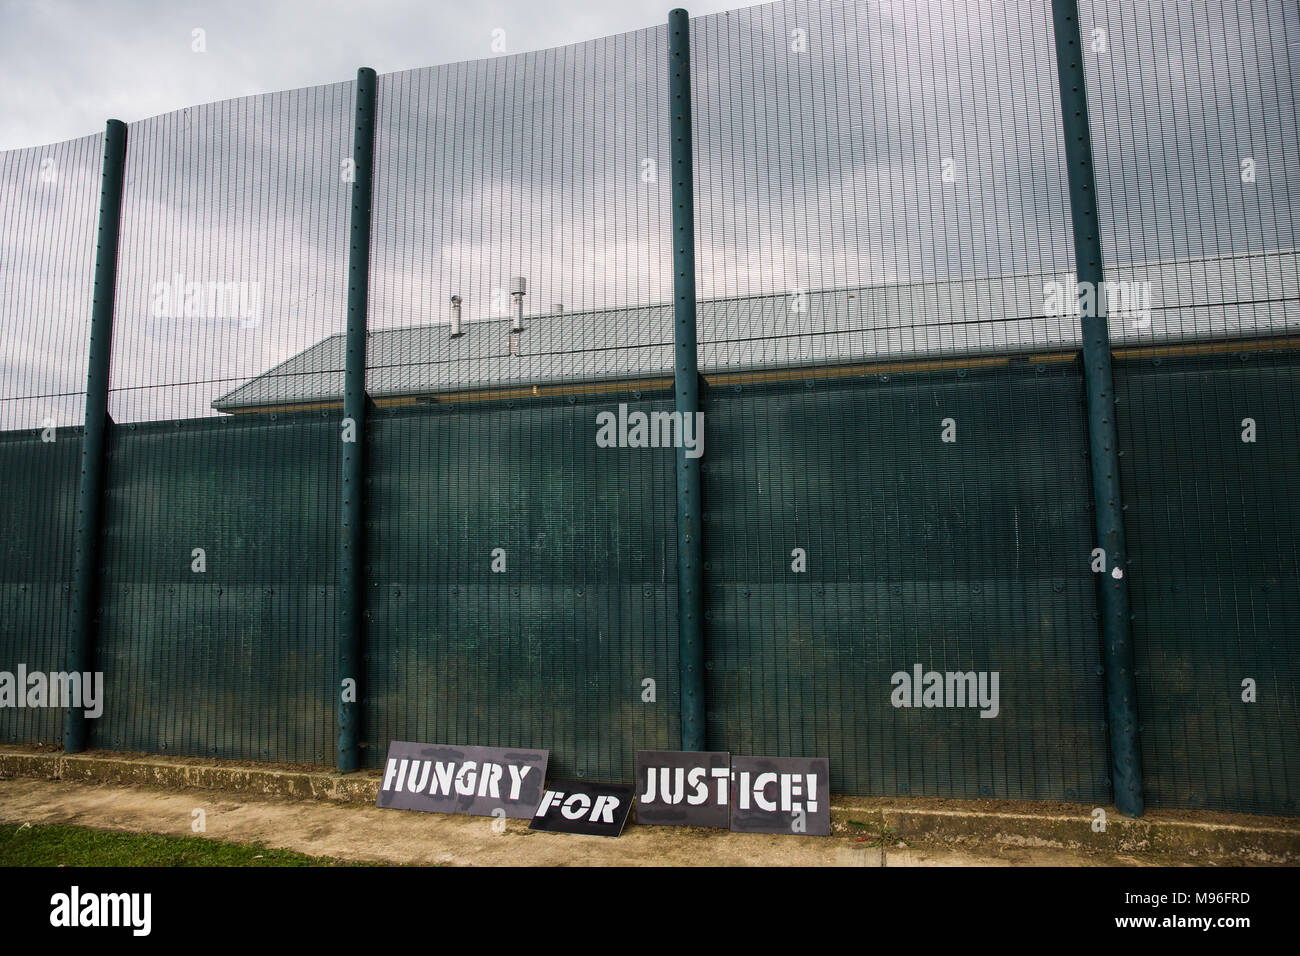 Milton Ernest, UK. 13th May, 2017. Signs used by campaigners against immigration detention protesting outside Yarl's Wood Immigration Removal Centre. - Stock Image